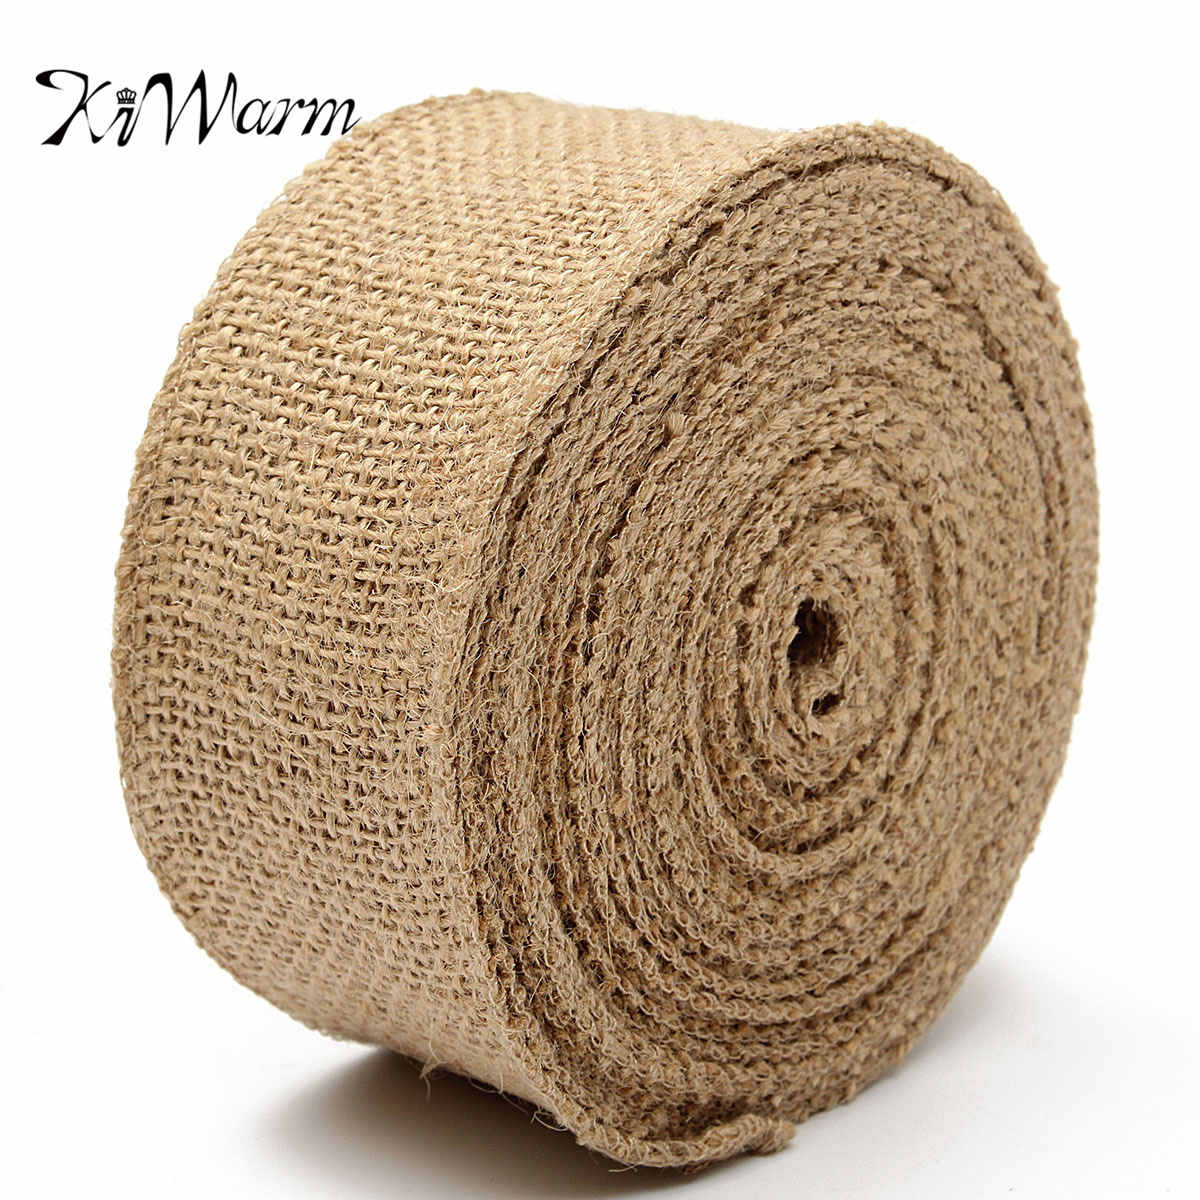 Diy Burlap Wedding Ideas: KiWarm Multi Sizes Natural Jute Hessian Burlap Ribbon